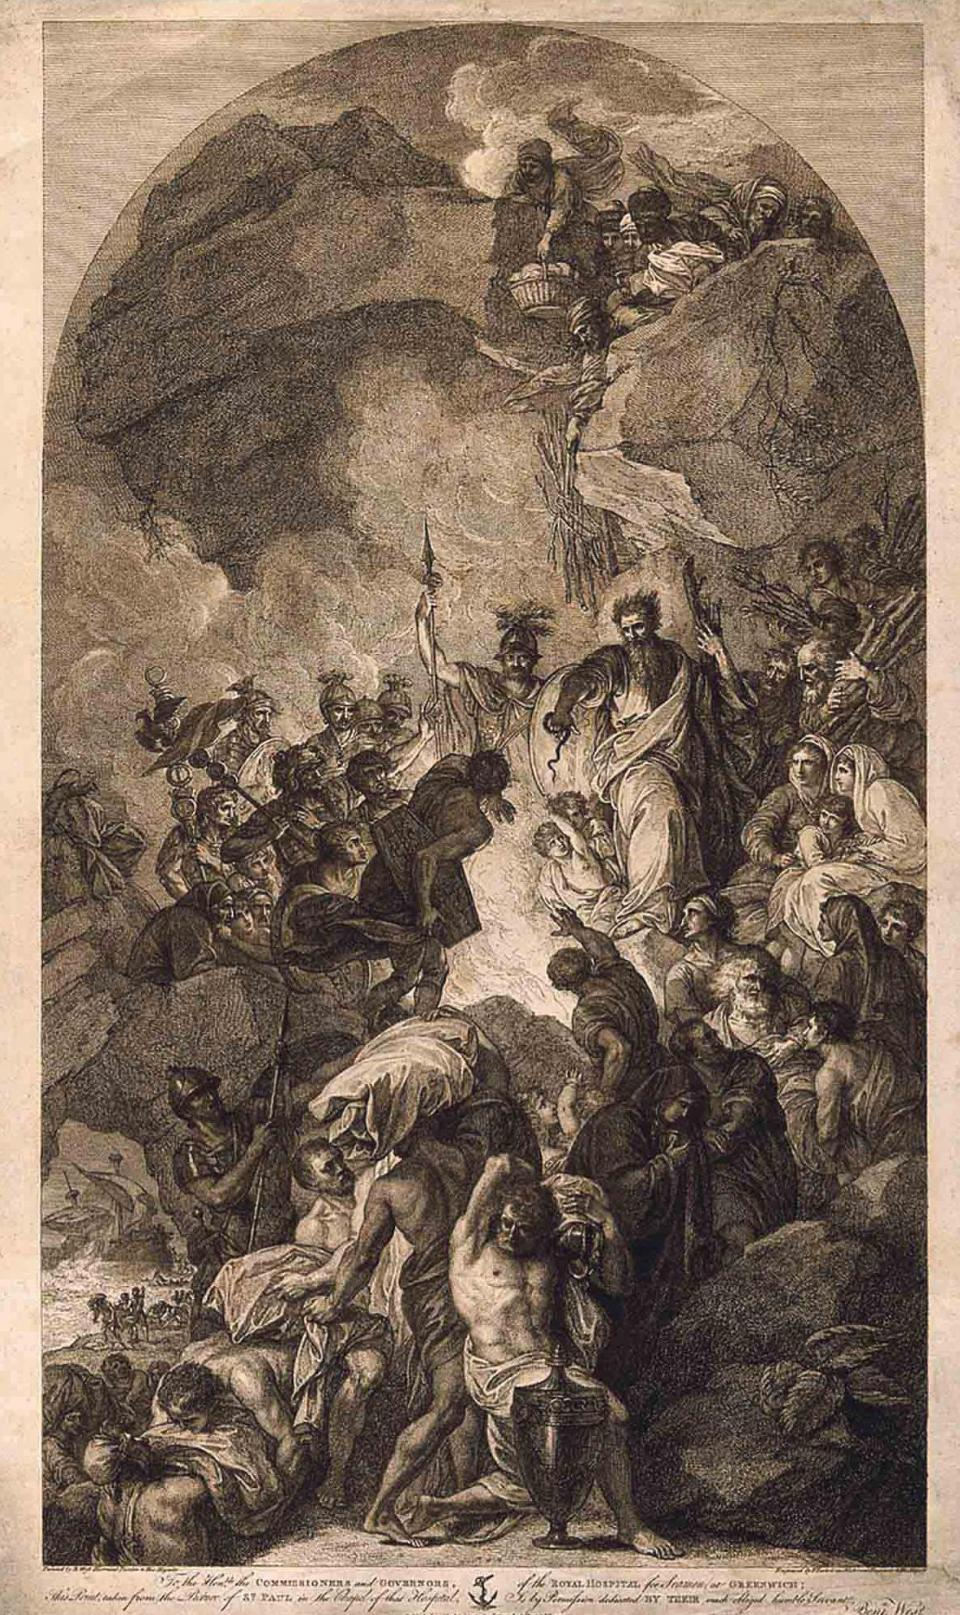 Saint Paul Shipwrecked on Malta, a 1791 etching by Francesco Bartolozzi, inspired by Benjamin West's painting in the Old Royal Naval College chapel at Greenwich. Photo: Wellcome Collection, Courtesy of Tania Williams